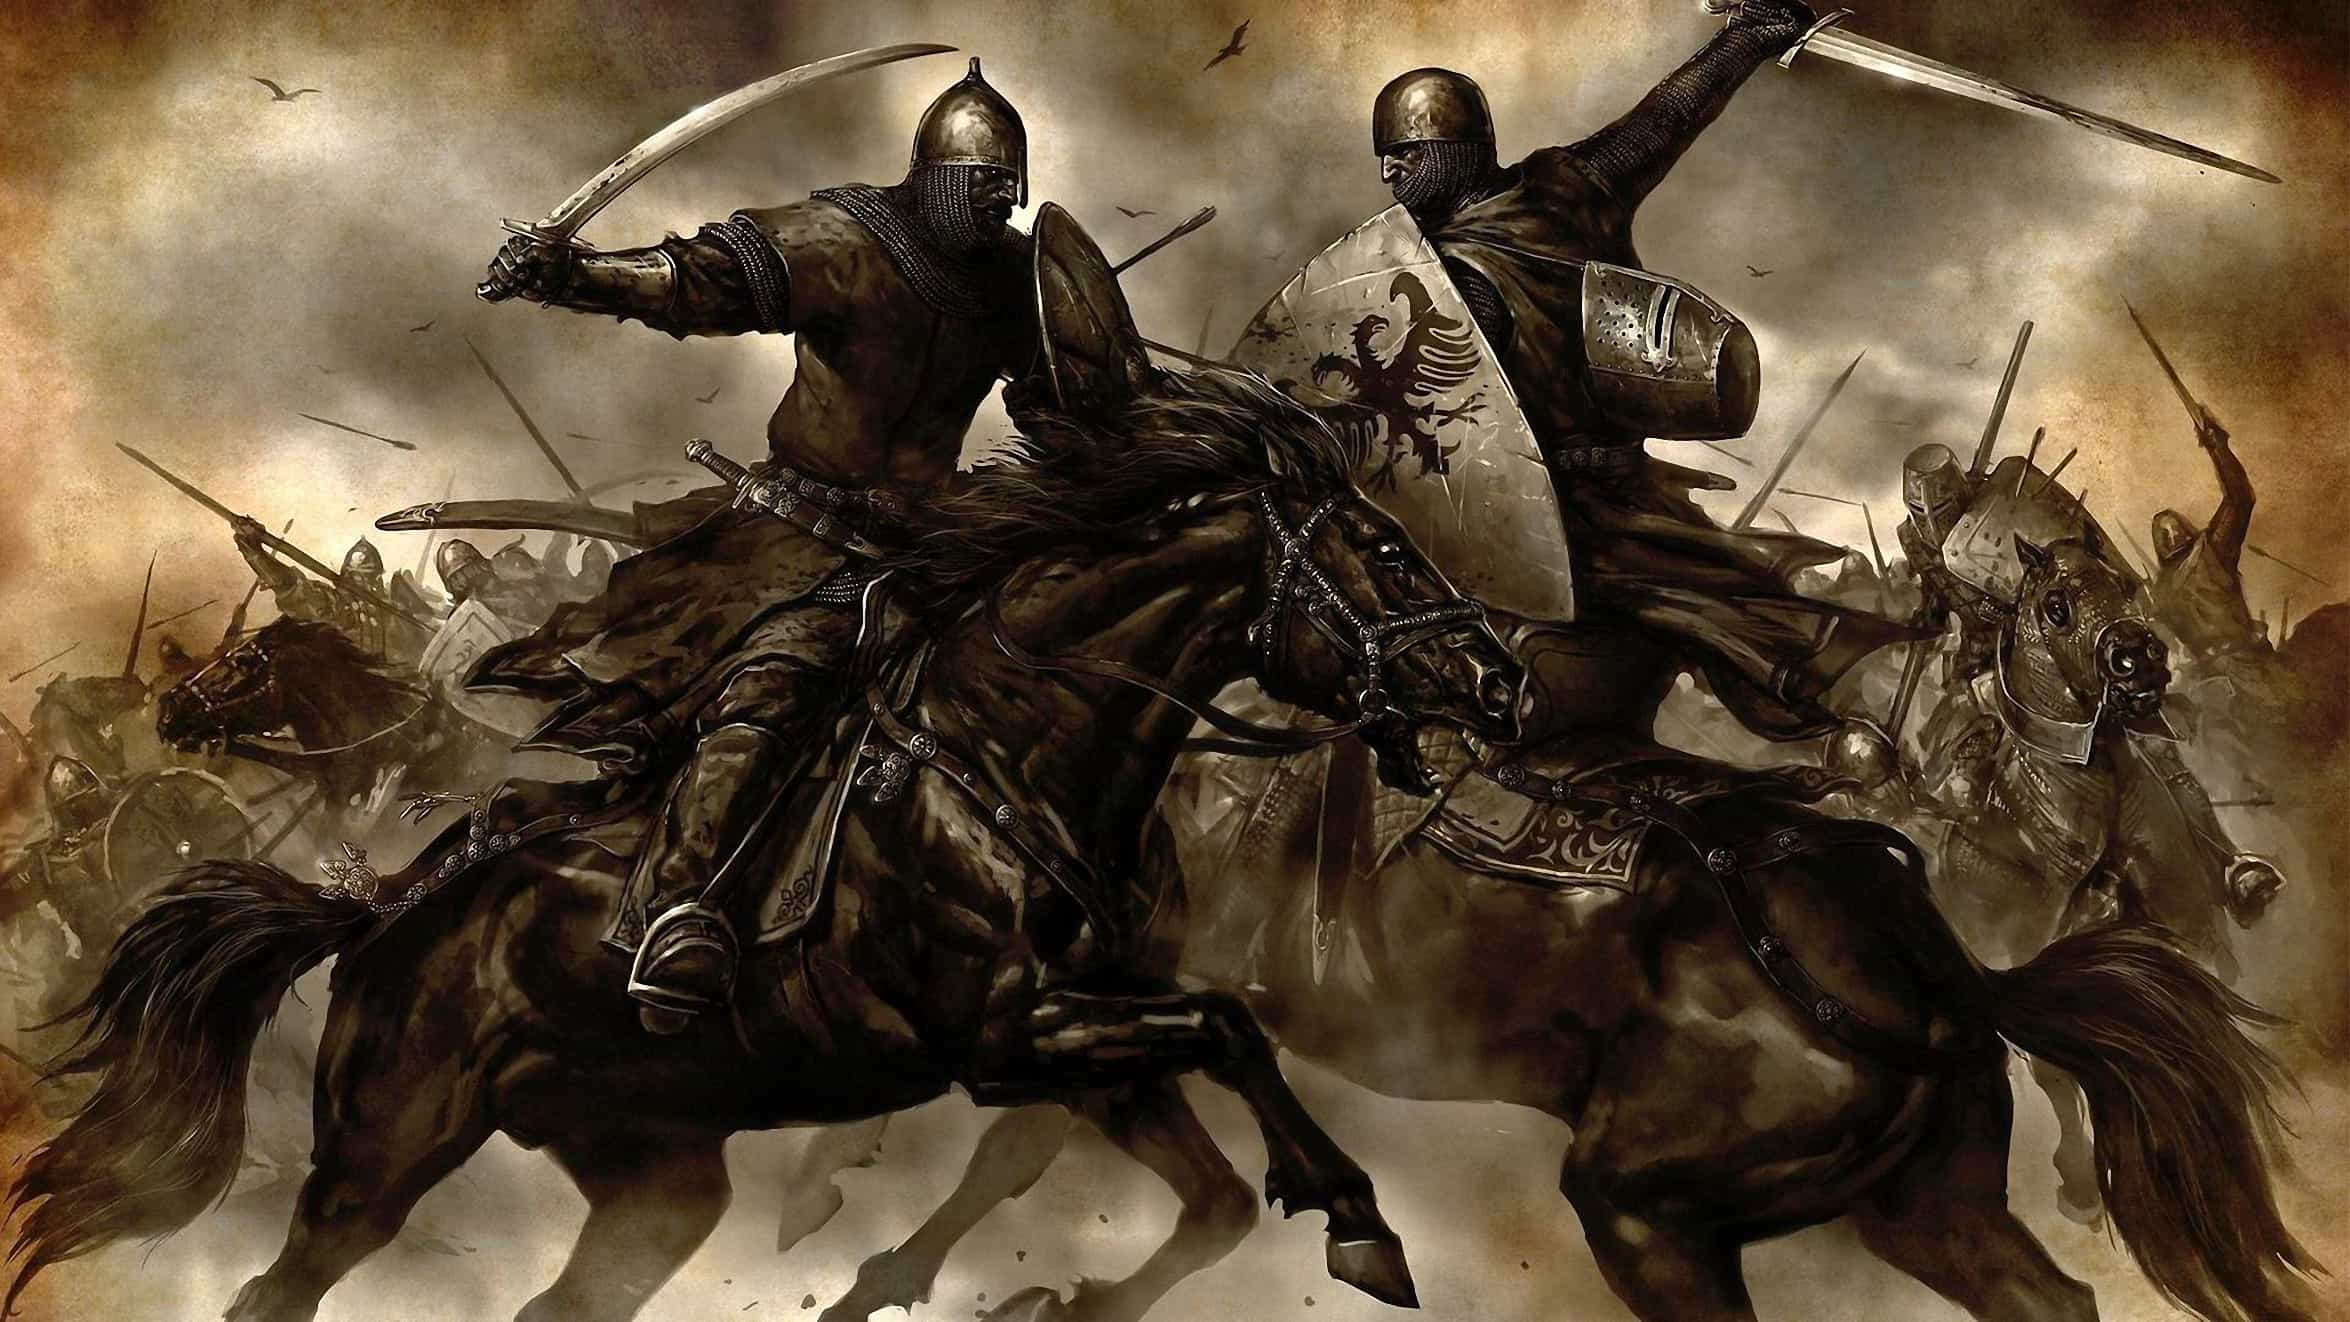 Mount & Blade: Warband Mod - Sword of Damocles: Warlords v3.92